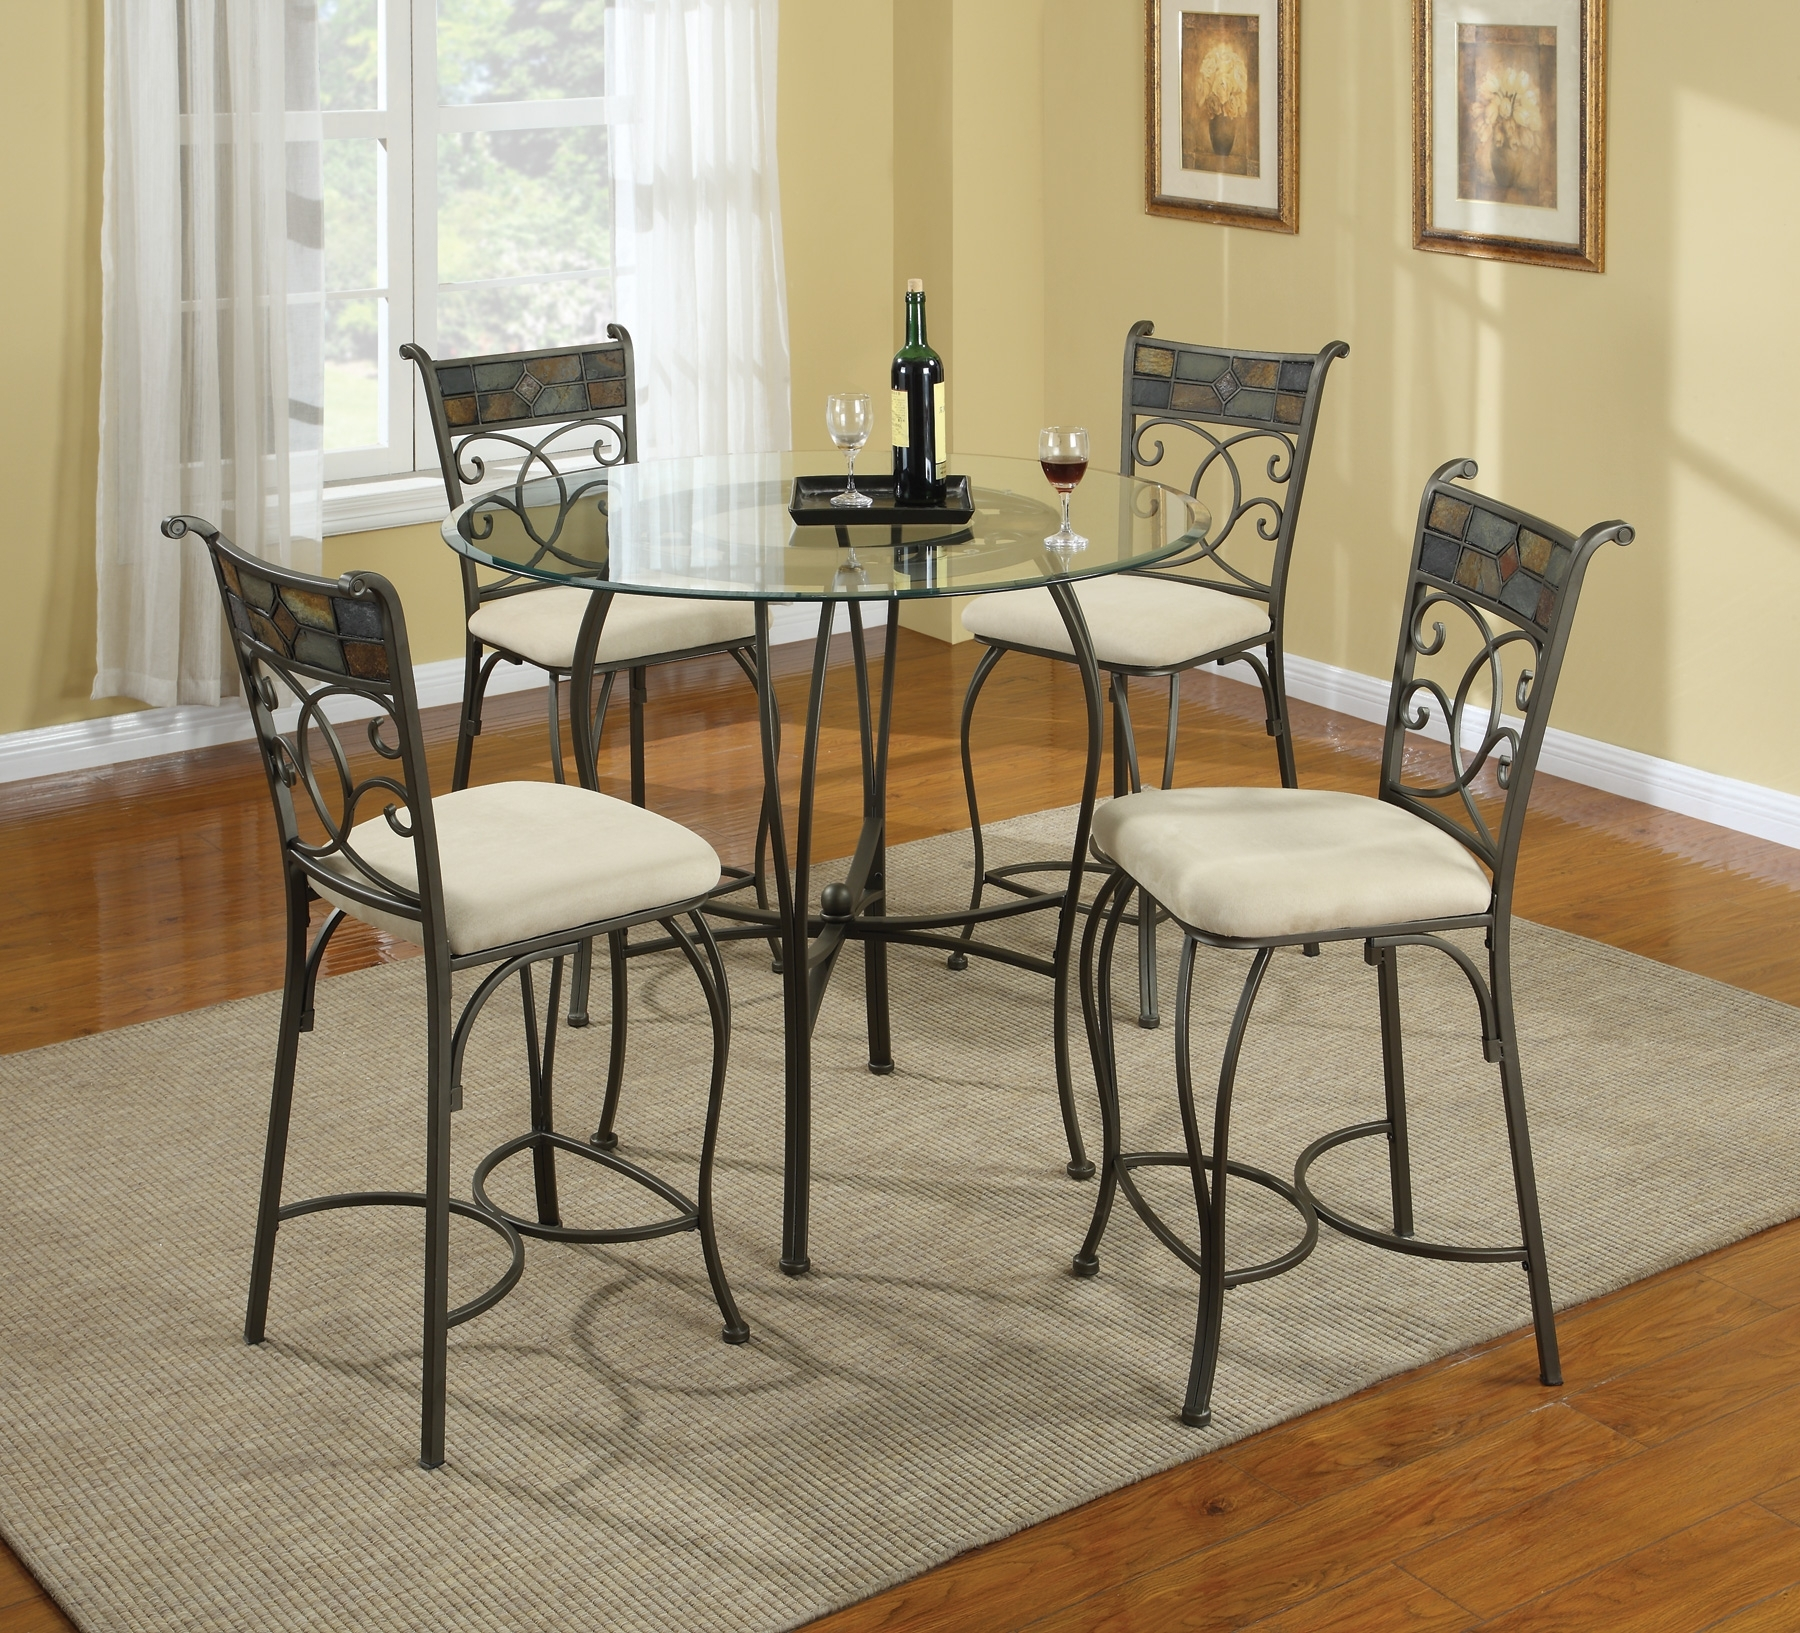 Retro Glass Dining Tables And Chairs Inside Well Known Wrought Sets Dining Room Glass Table Stunning Small Extending Chairs (View 19 of 25)